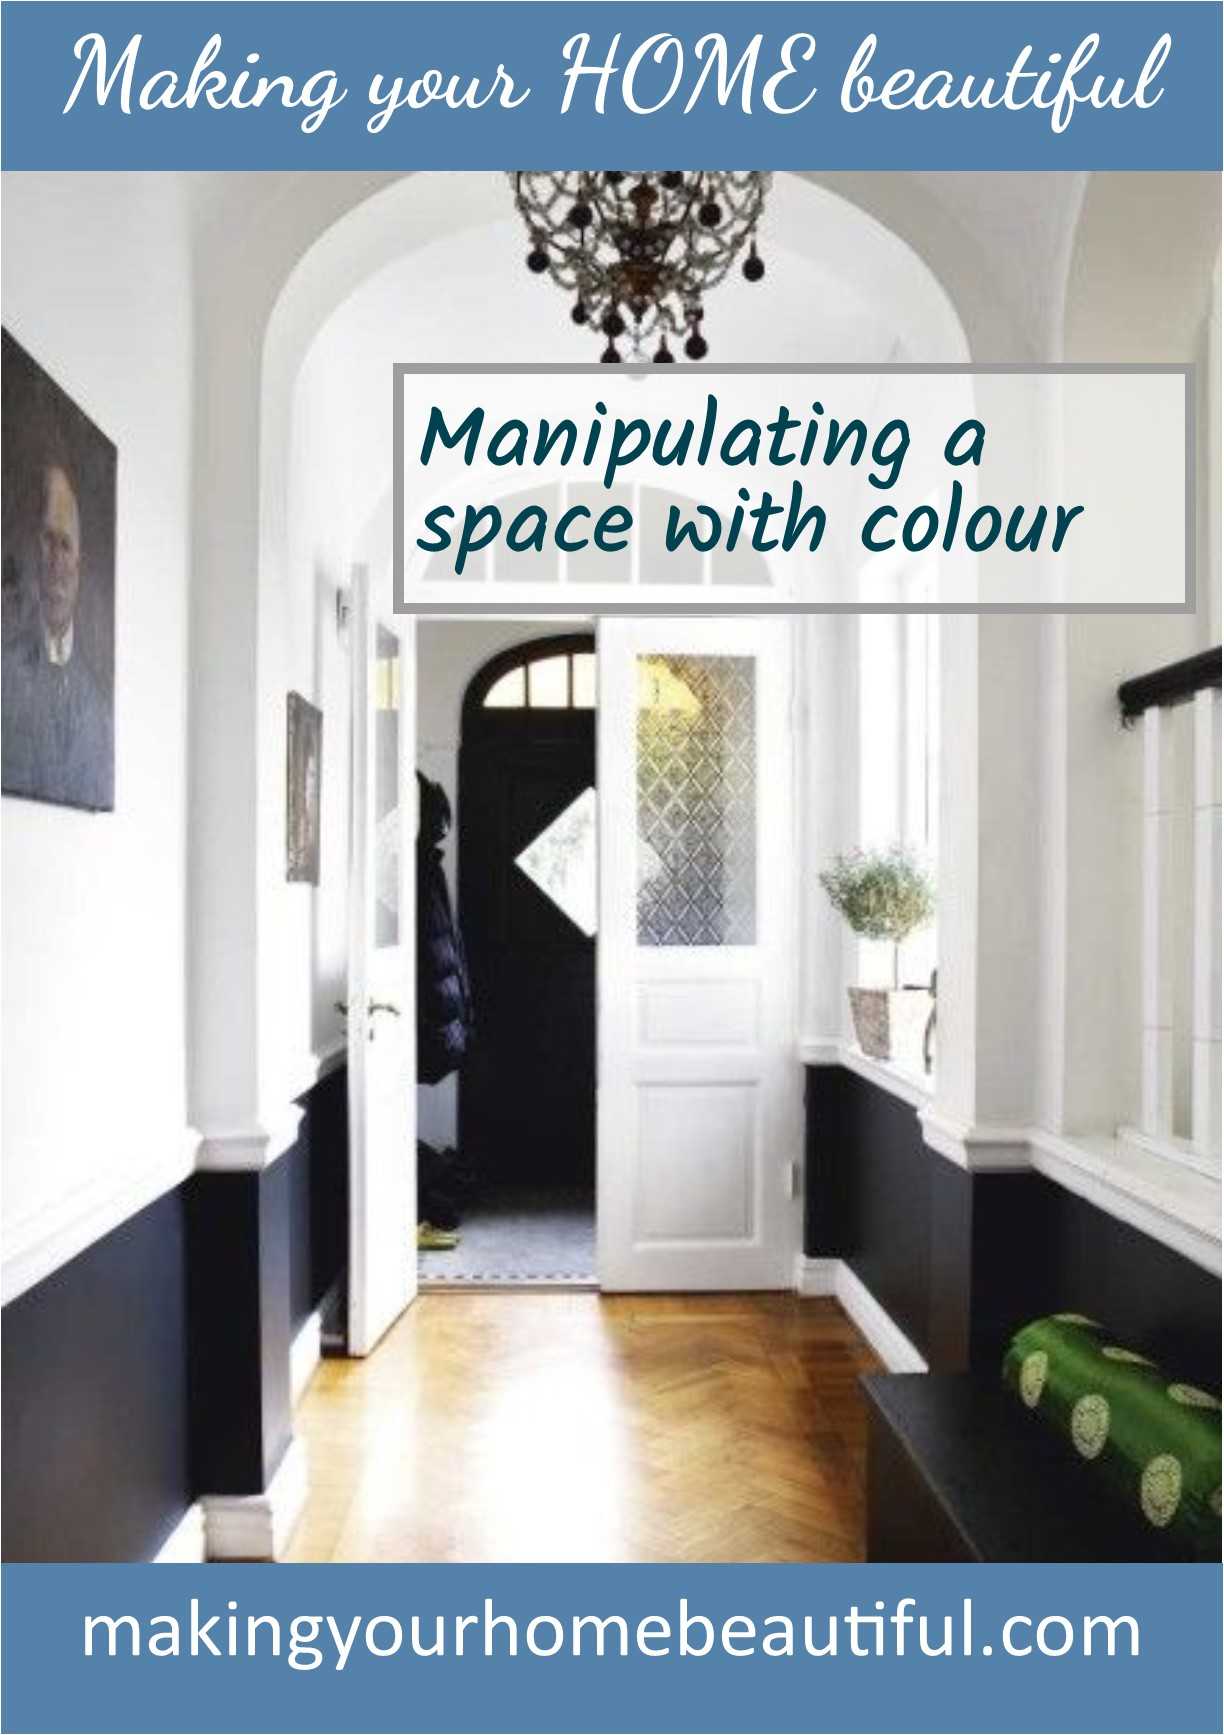 Manipulating a space with colour - colour lesson 5